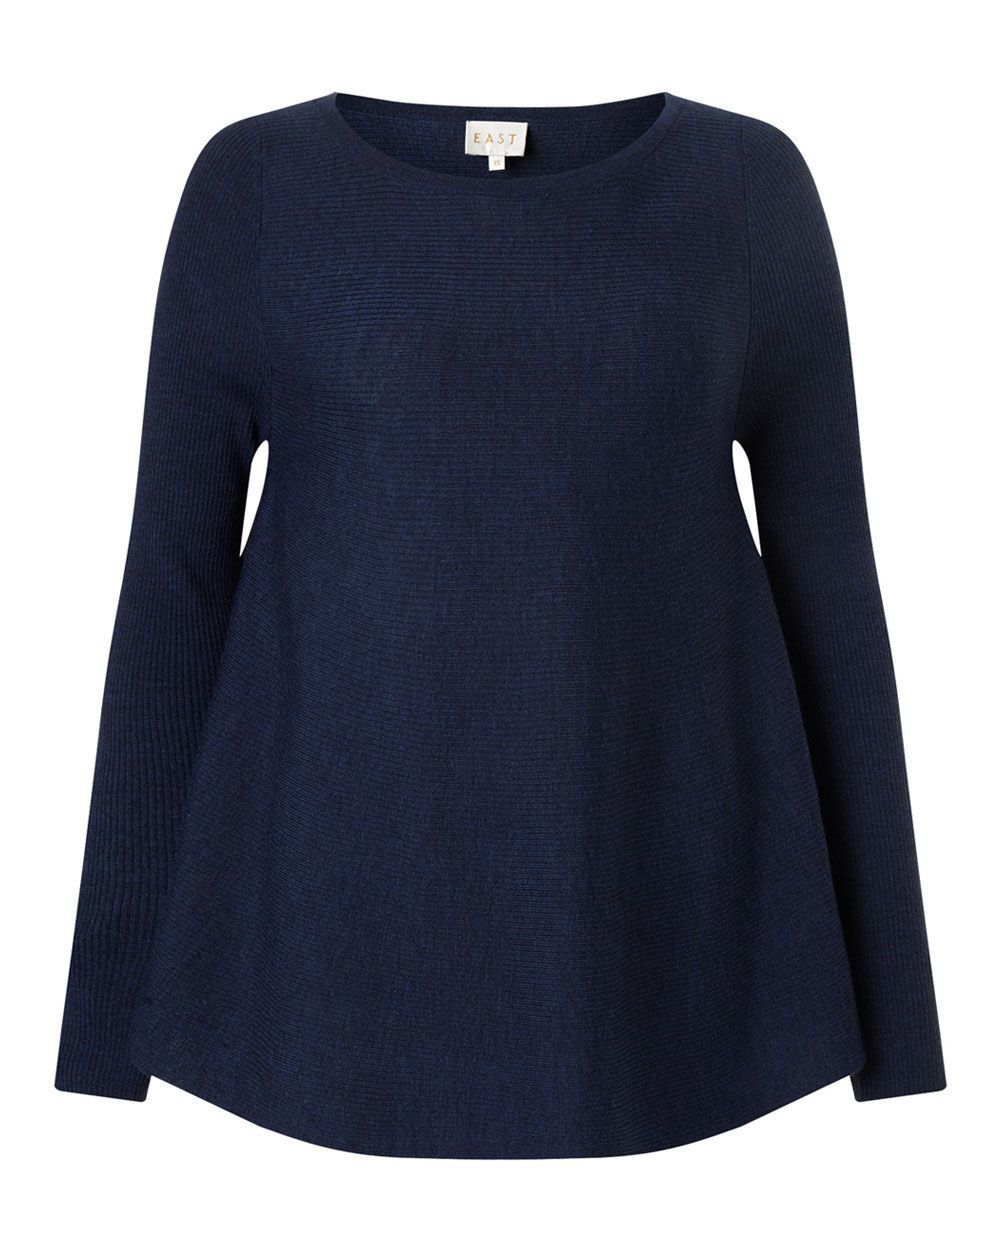 Merino Rib Swing Jumper, Indigo - neckline: round neck; pattern: plain; length: below the bottom; style: standard; predominant colour: navy; occasions: casual, creative work; fibres: wool - 100%; fit: loose; sleeve length: long sleeve; sleeve style: standard; texture group: knits/crochet; pattern type: knitted - fine stitch; season: a/w 2015; wardrobe: basic